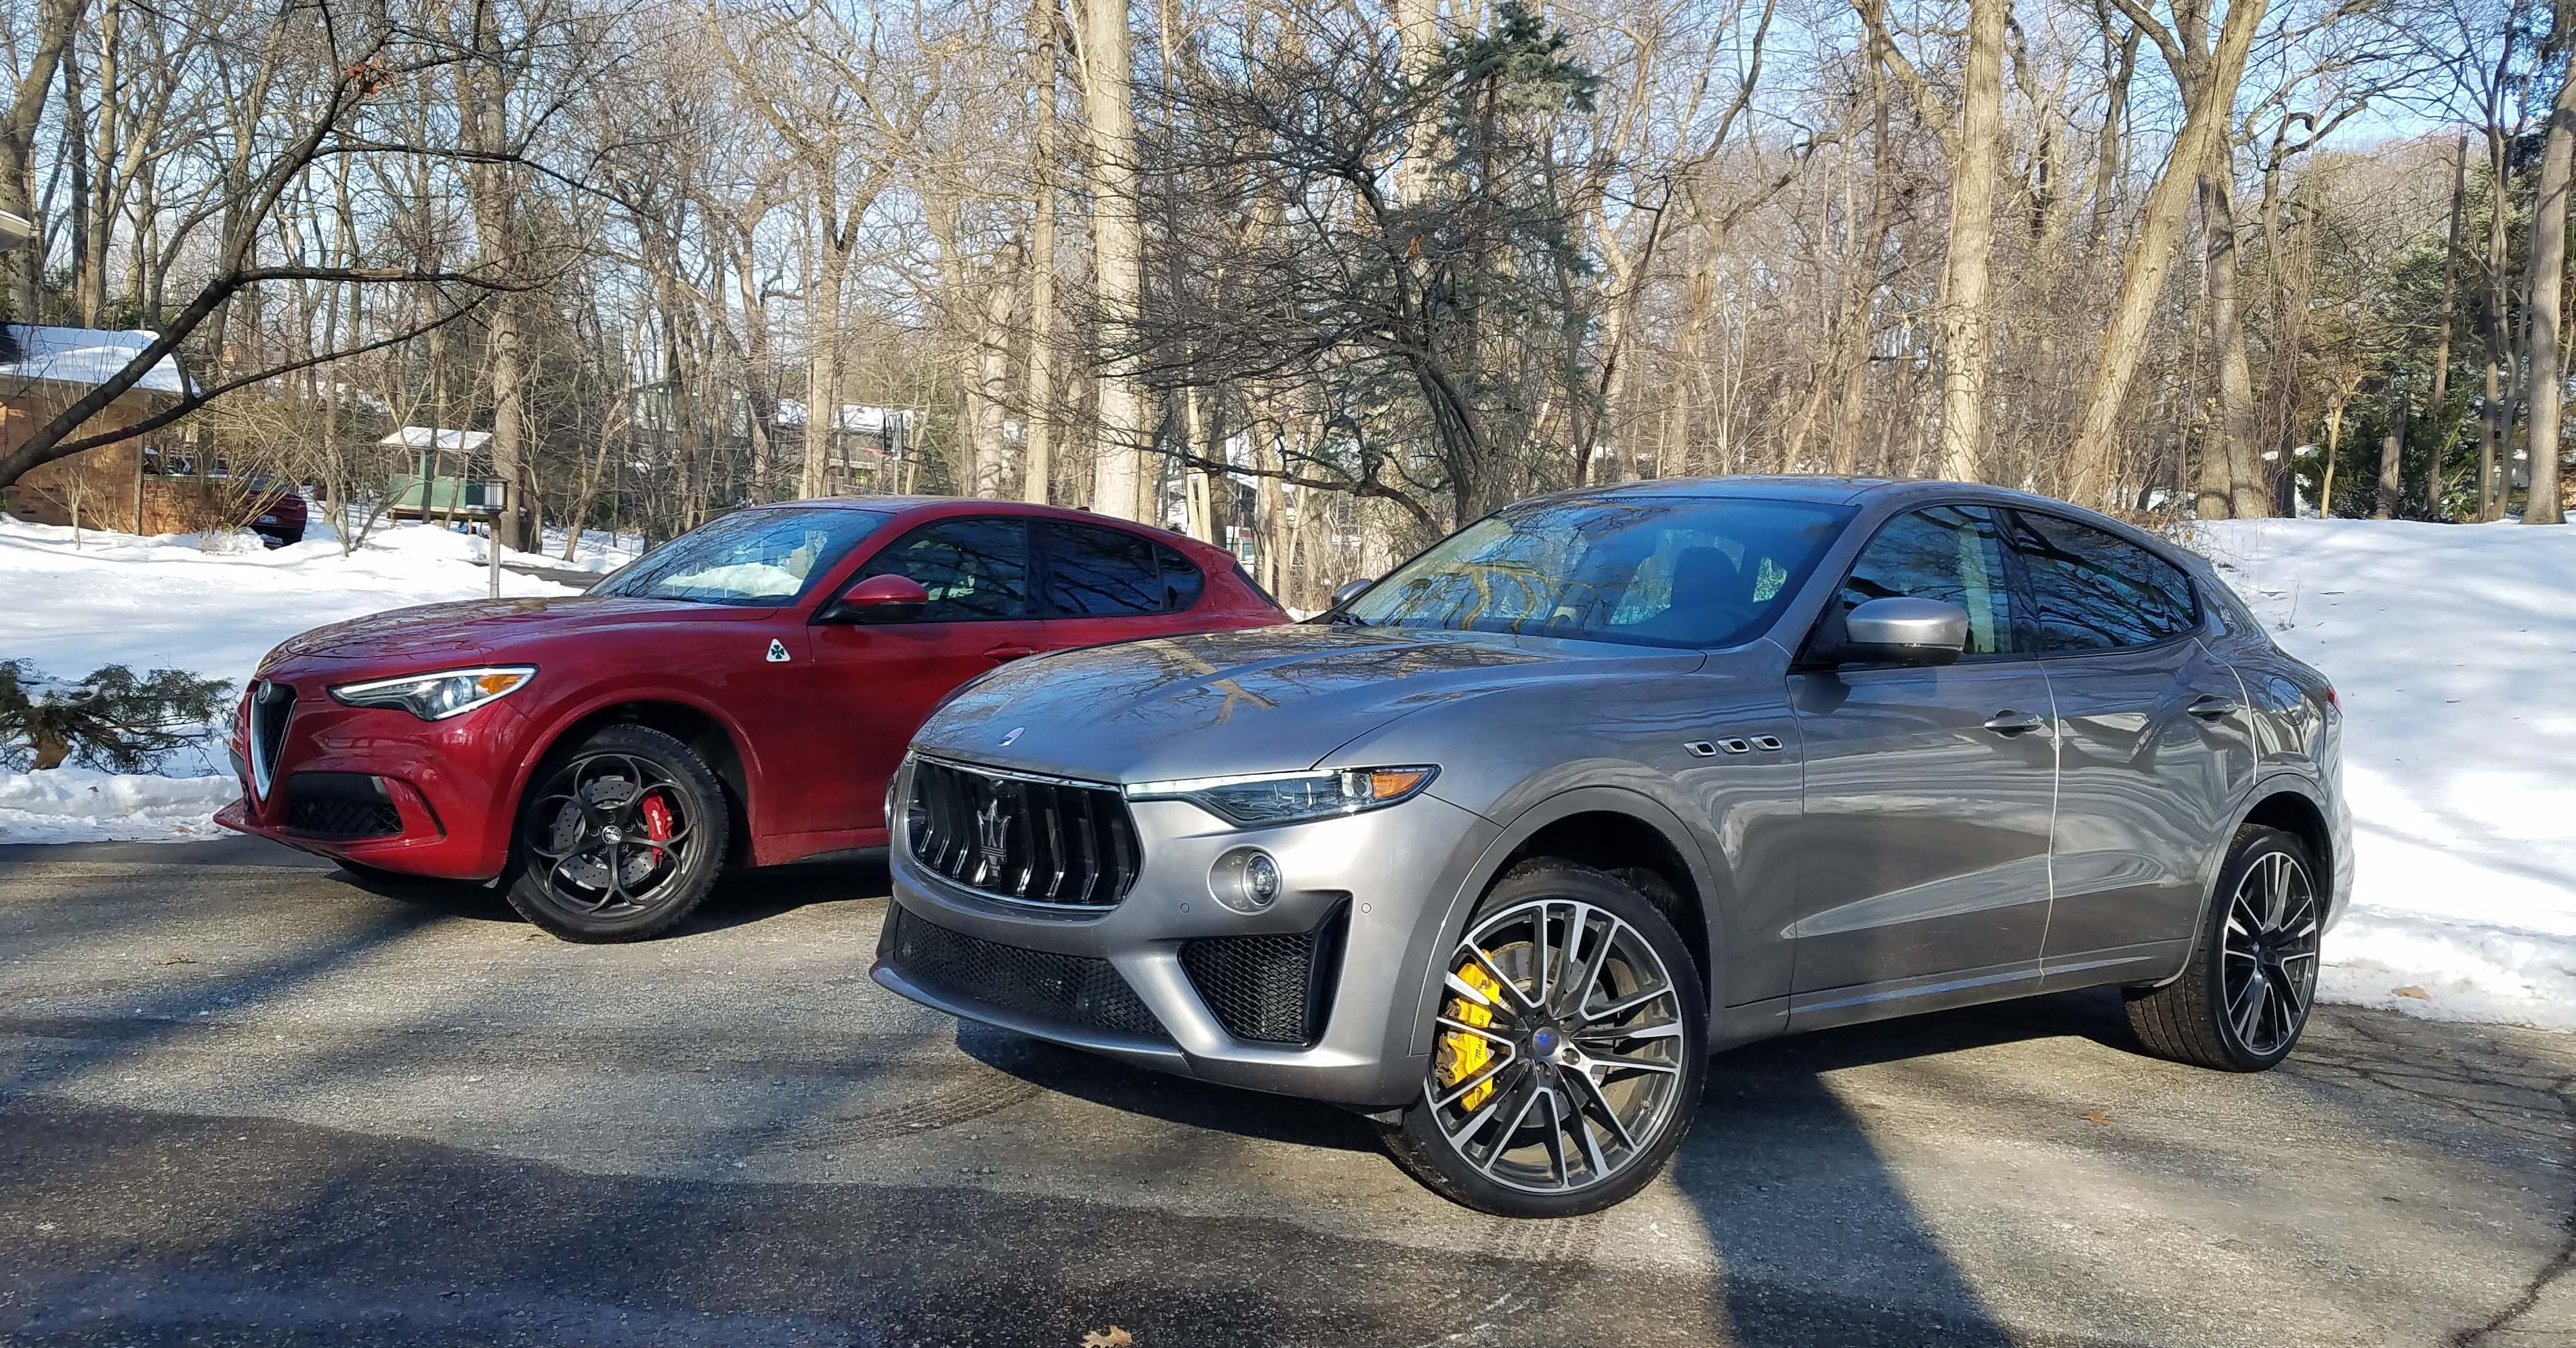 Italian stallions: The Alfa Romeo Stelvio Quadrifoglio (left) and Maserati Levante have become their brand's best-selling vehicles. But the Levante's big V-8 makes it feel more like an American muscle car than the fine-tuned Alfa.